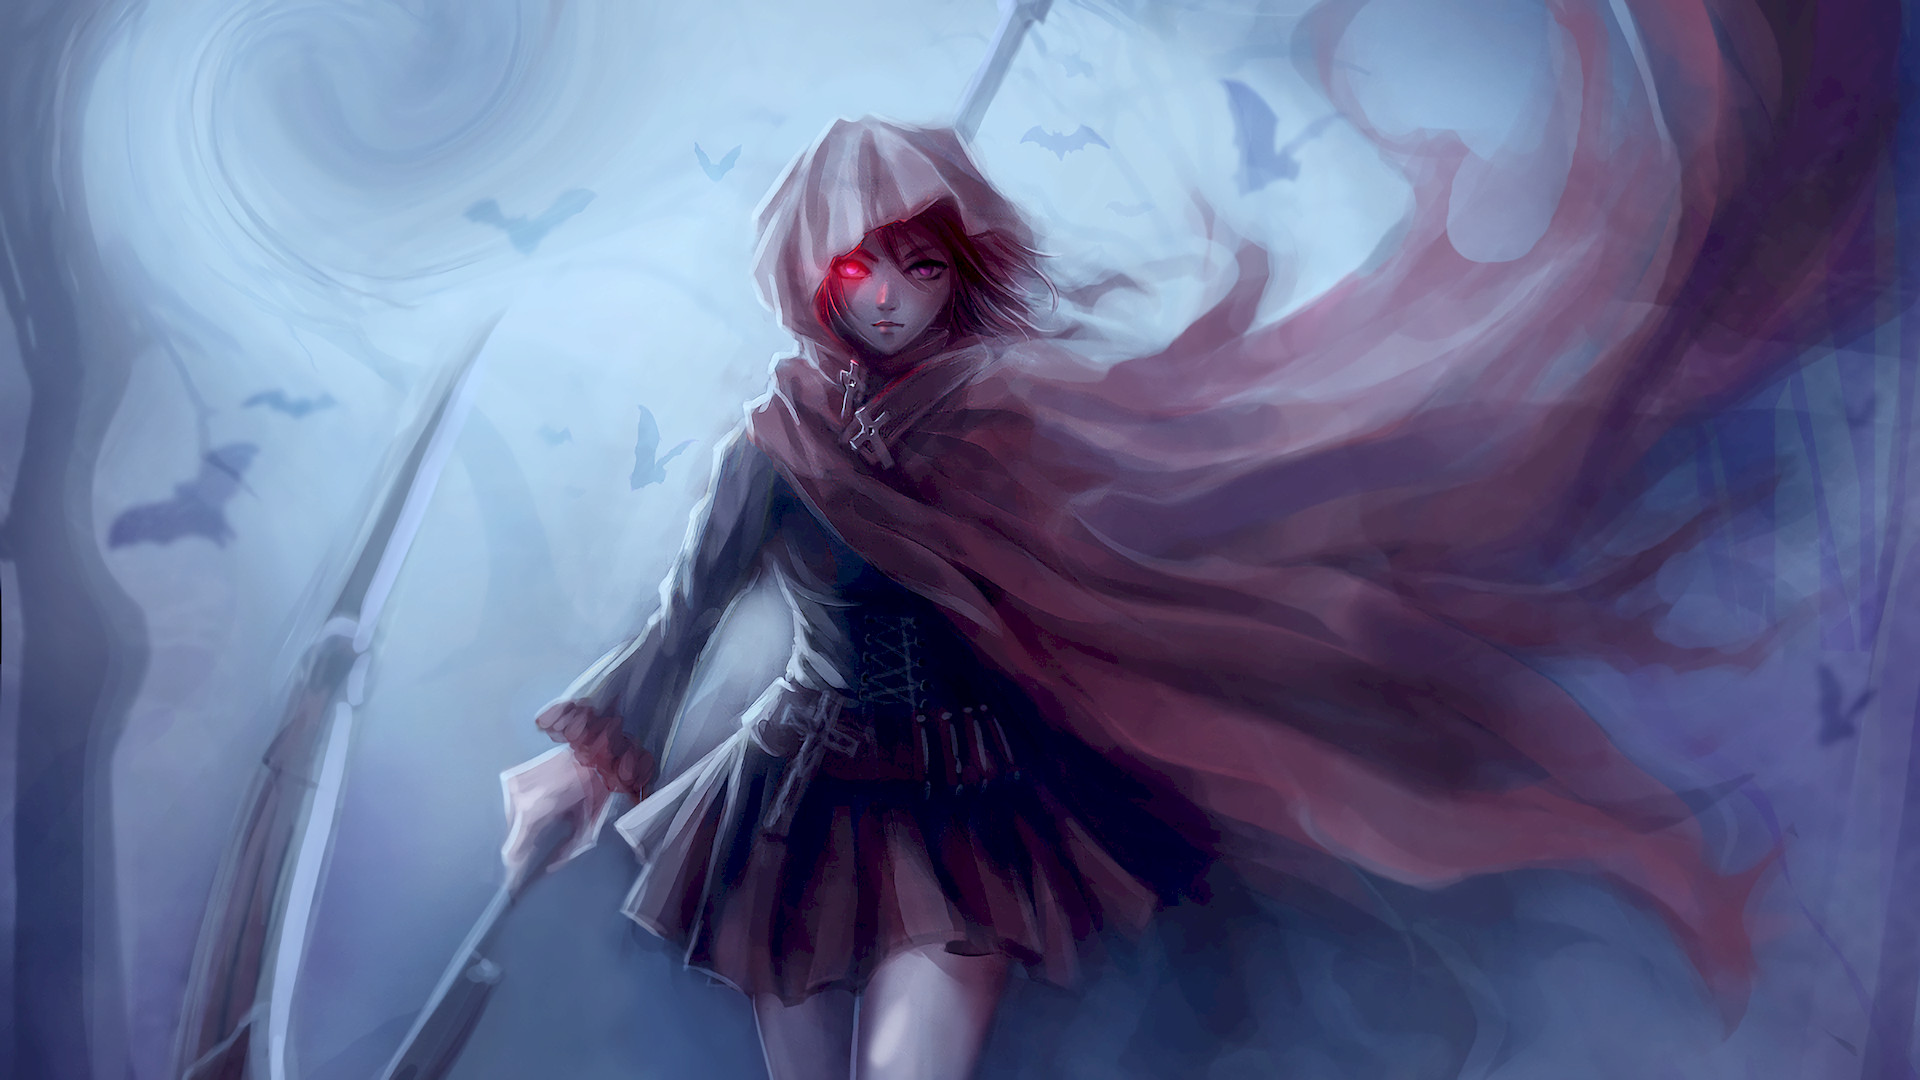 Anime Inspired Hd Fantasy Wallpapers For Your Collection: Anime Warrior Wallpaper (80+ Images